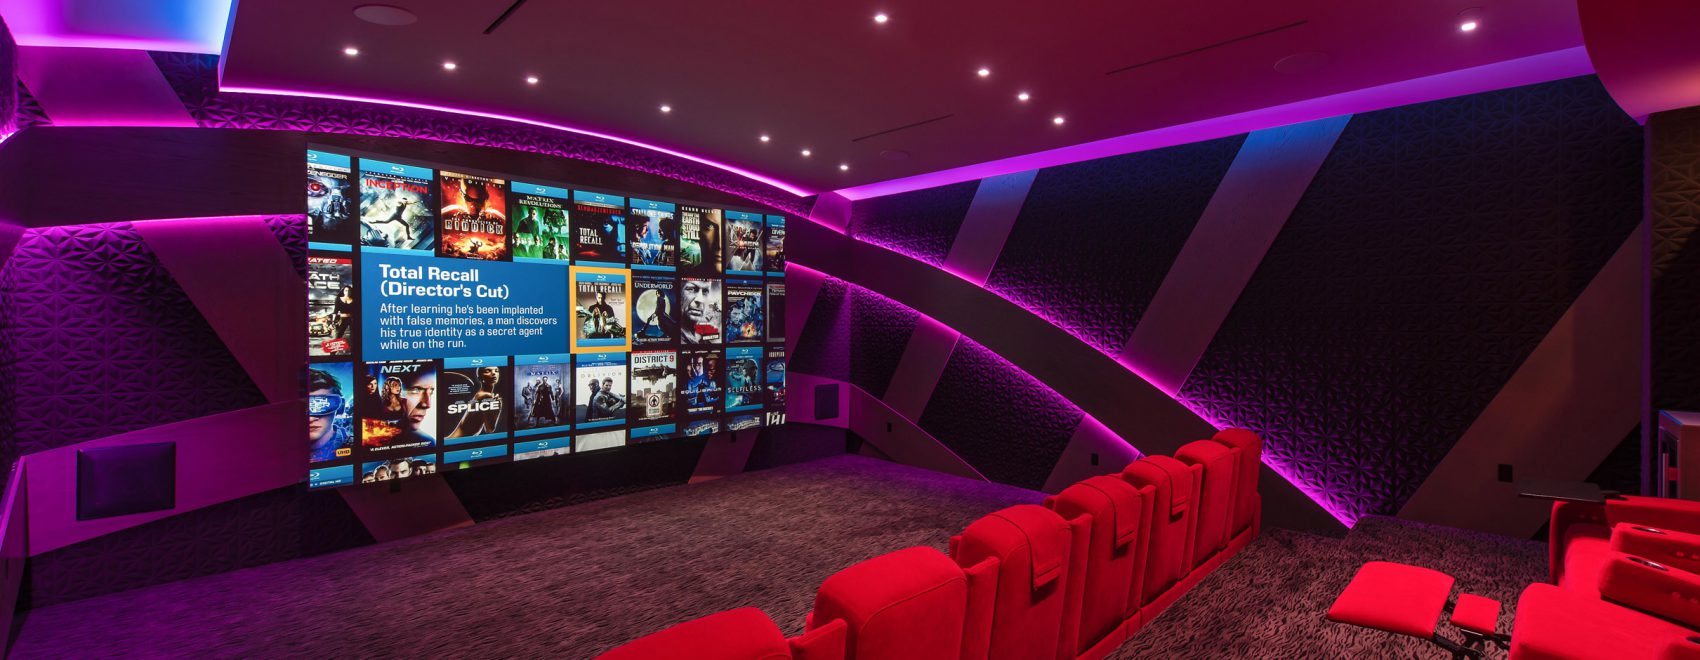 Home theater display including projector, screen, lighting